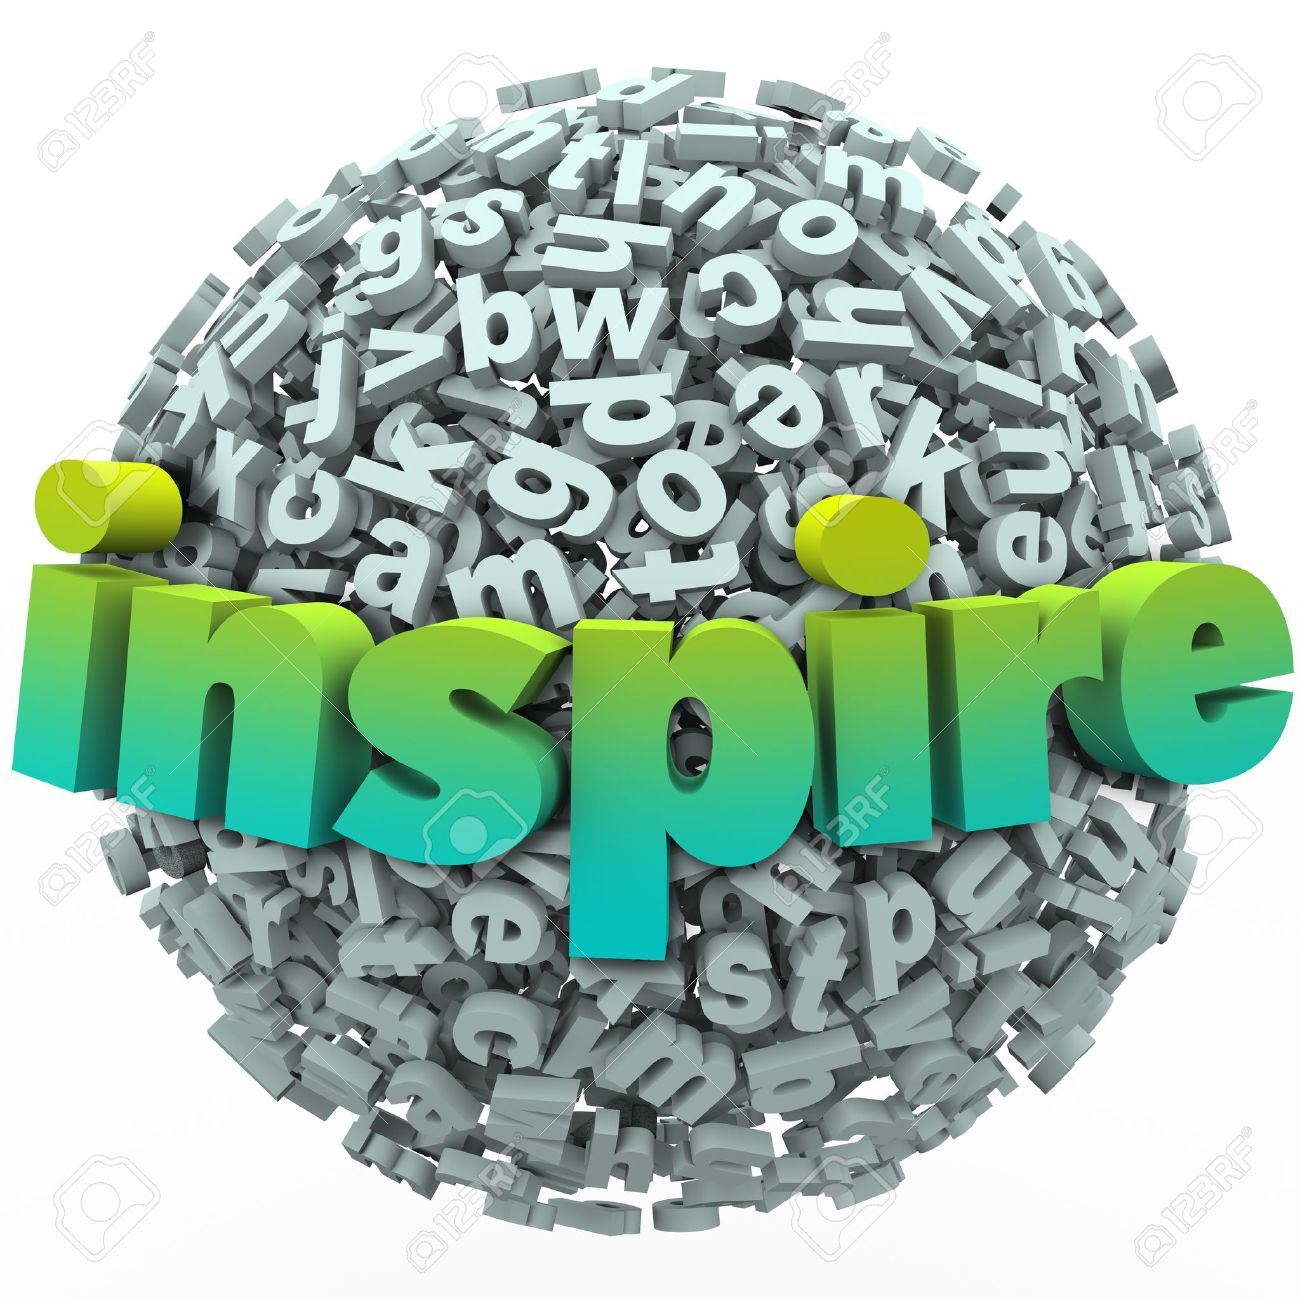 The word Inspire on a ball of 3d letters to illustrate learning and education from an inspirational teacher or coach - 21130988